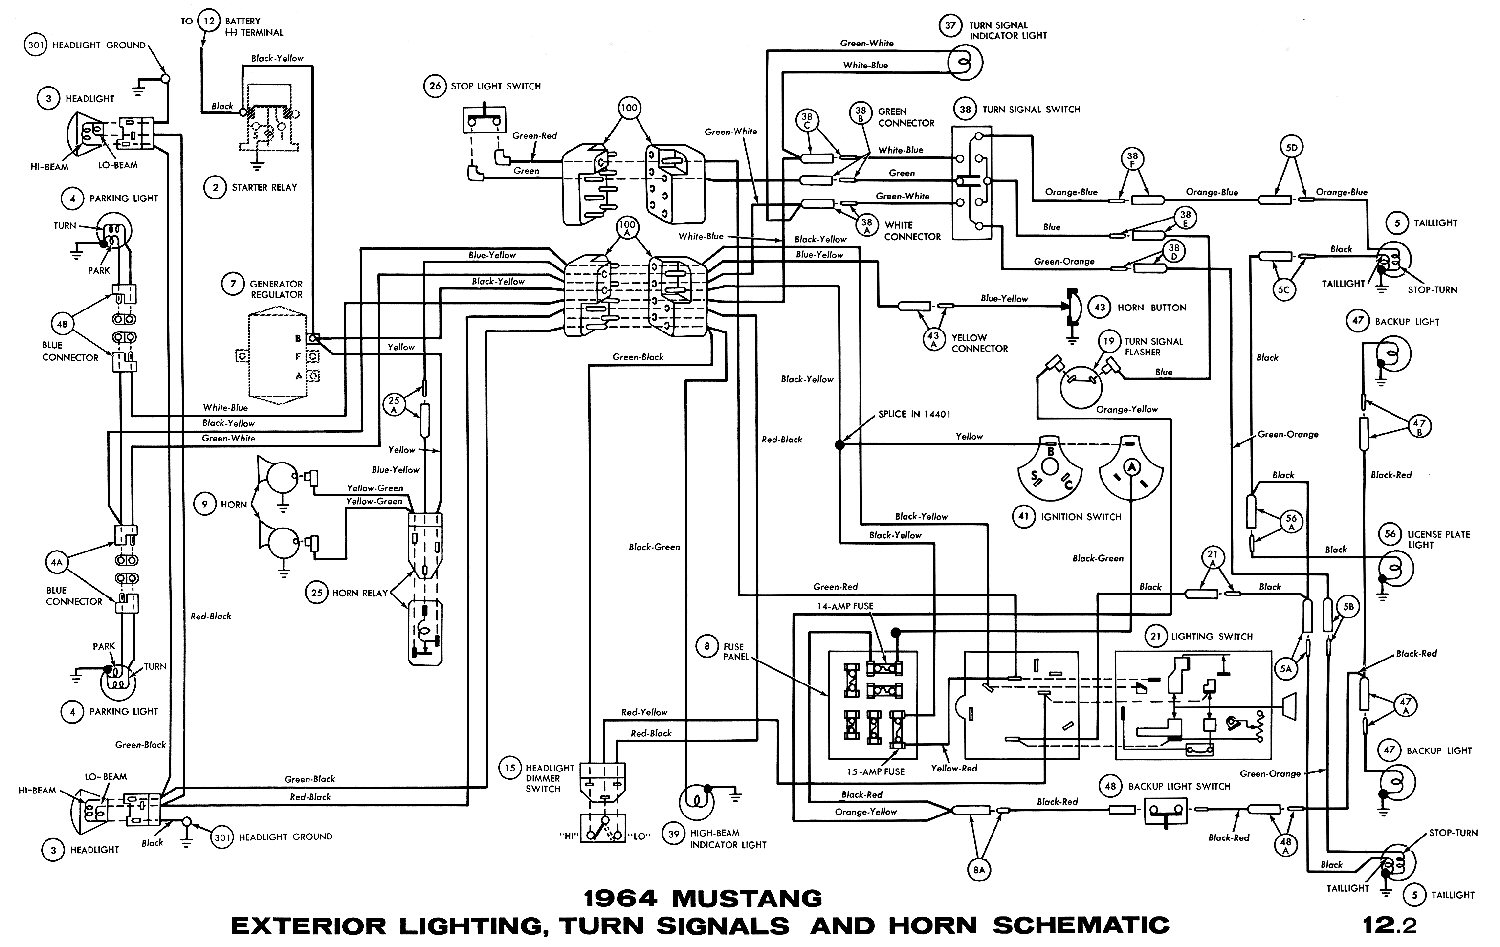 1964 Mustang Wiring Diagrams Average Joe Restoration Turn Signal Diagram Signals And Horns Pictorial Or Schematic Headlamps